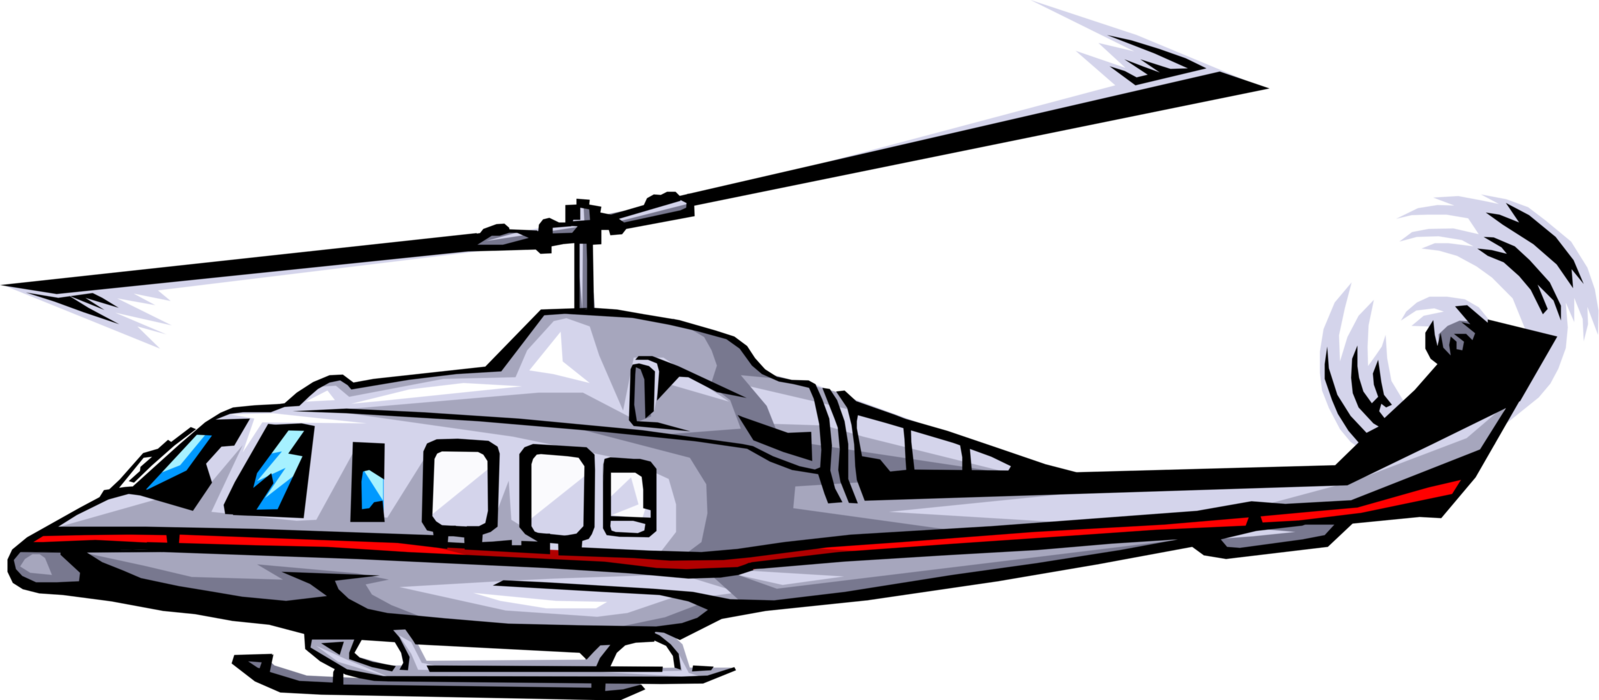 Vector Illustration of Helicopter Rotorcraft Applies Lift and Thrust Supplied by Rotors